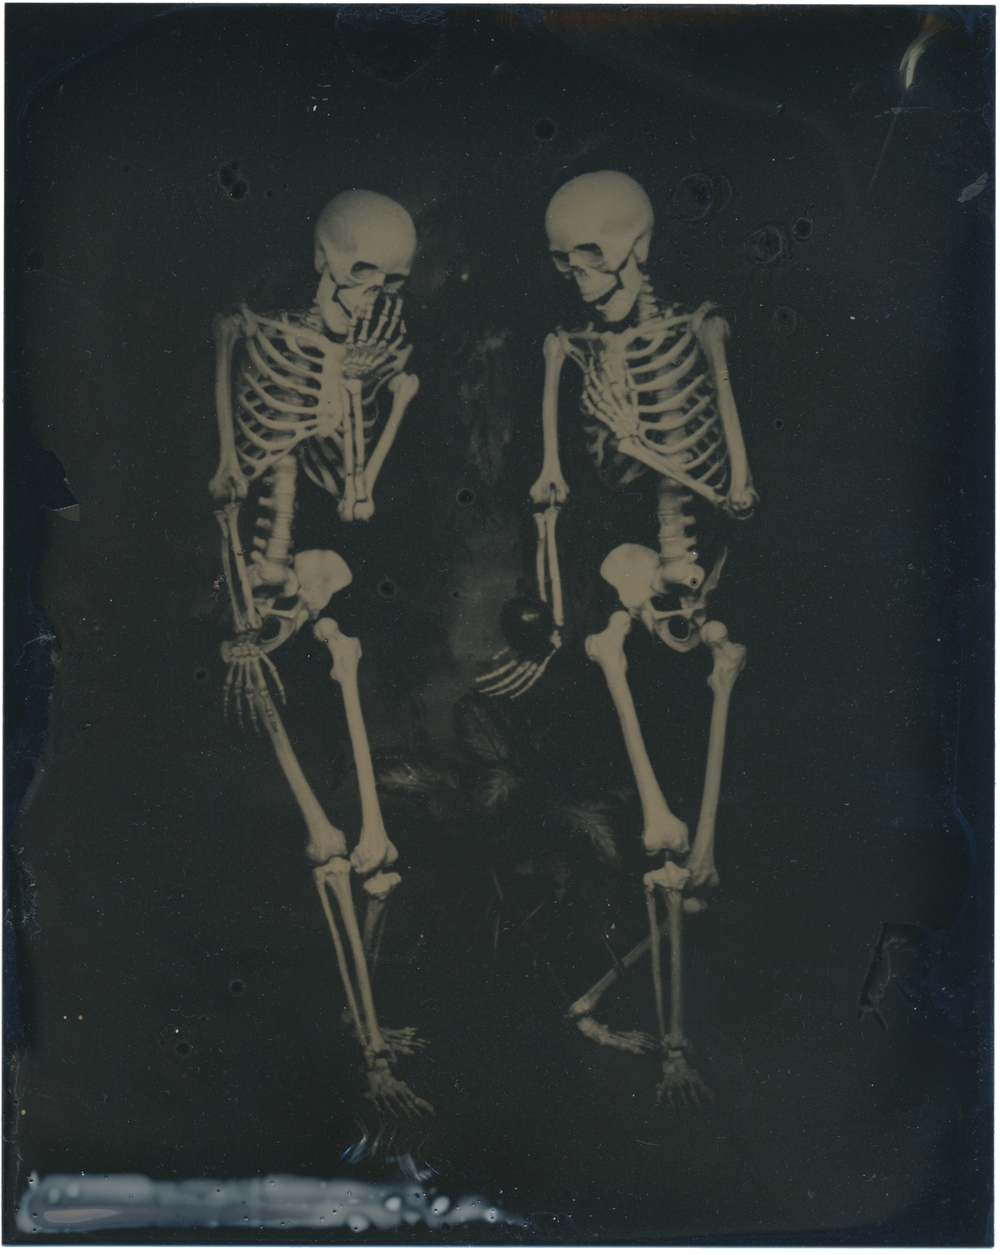 After the Fall of Man   2015  Tintype  4x5